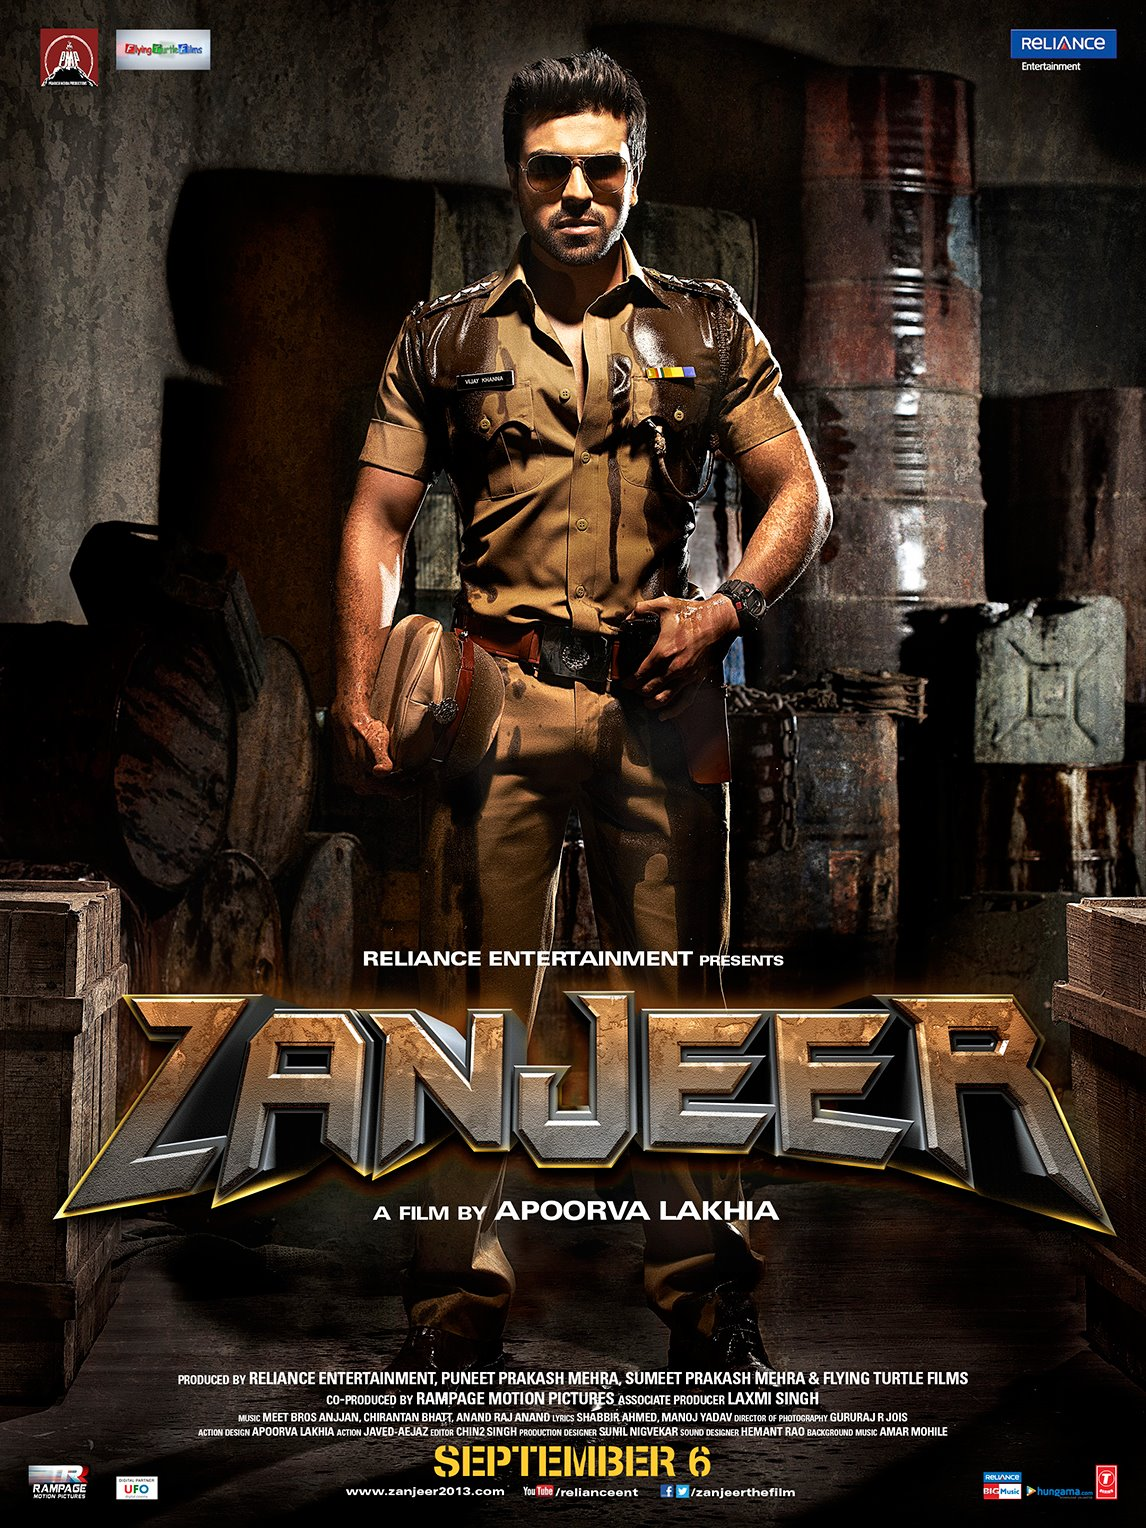 Zanjeer - Movie Poster #4 (Original)